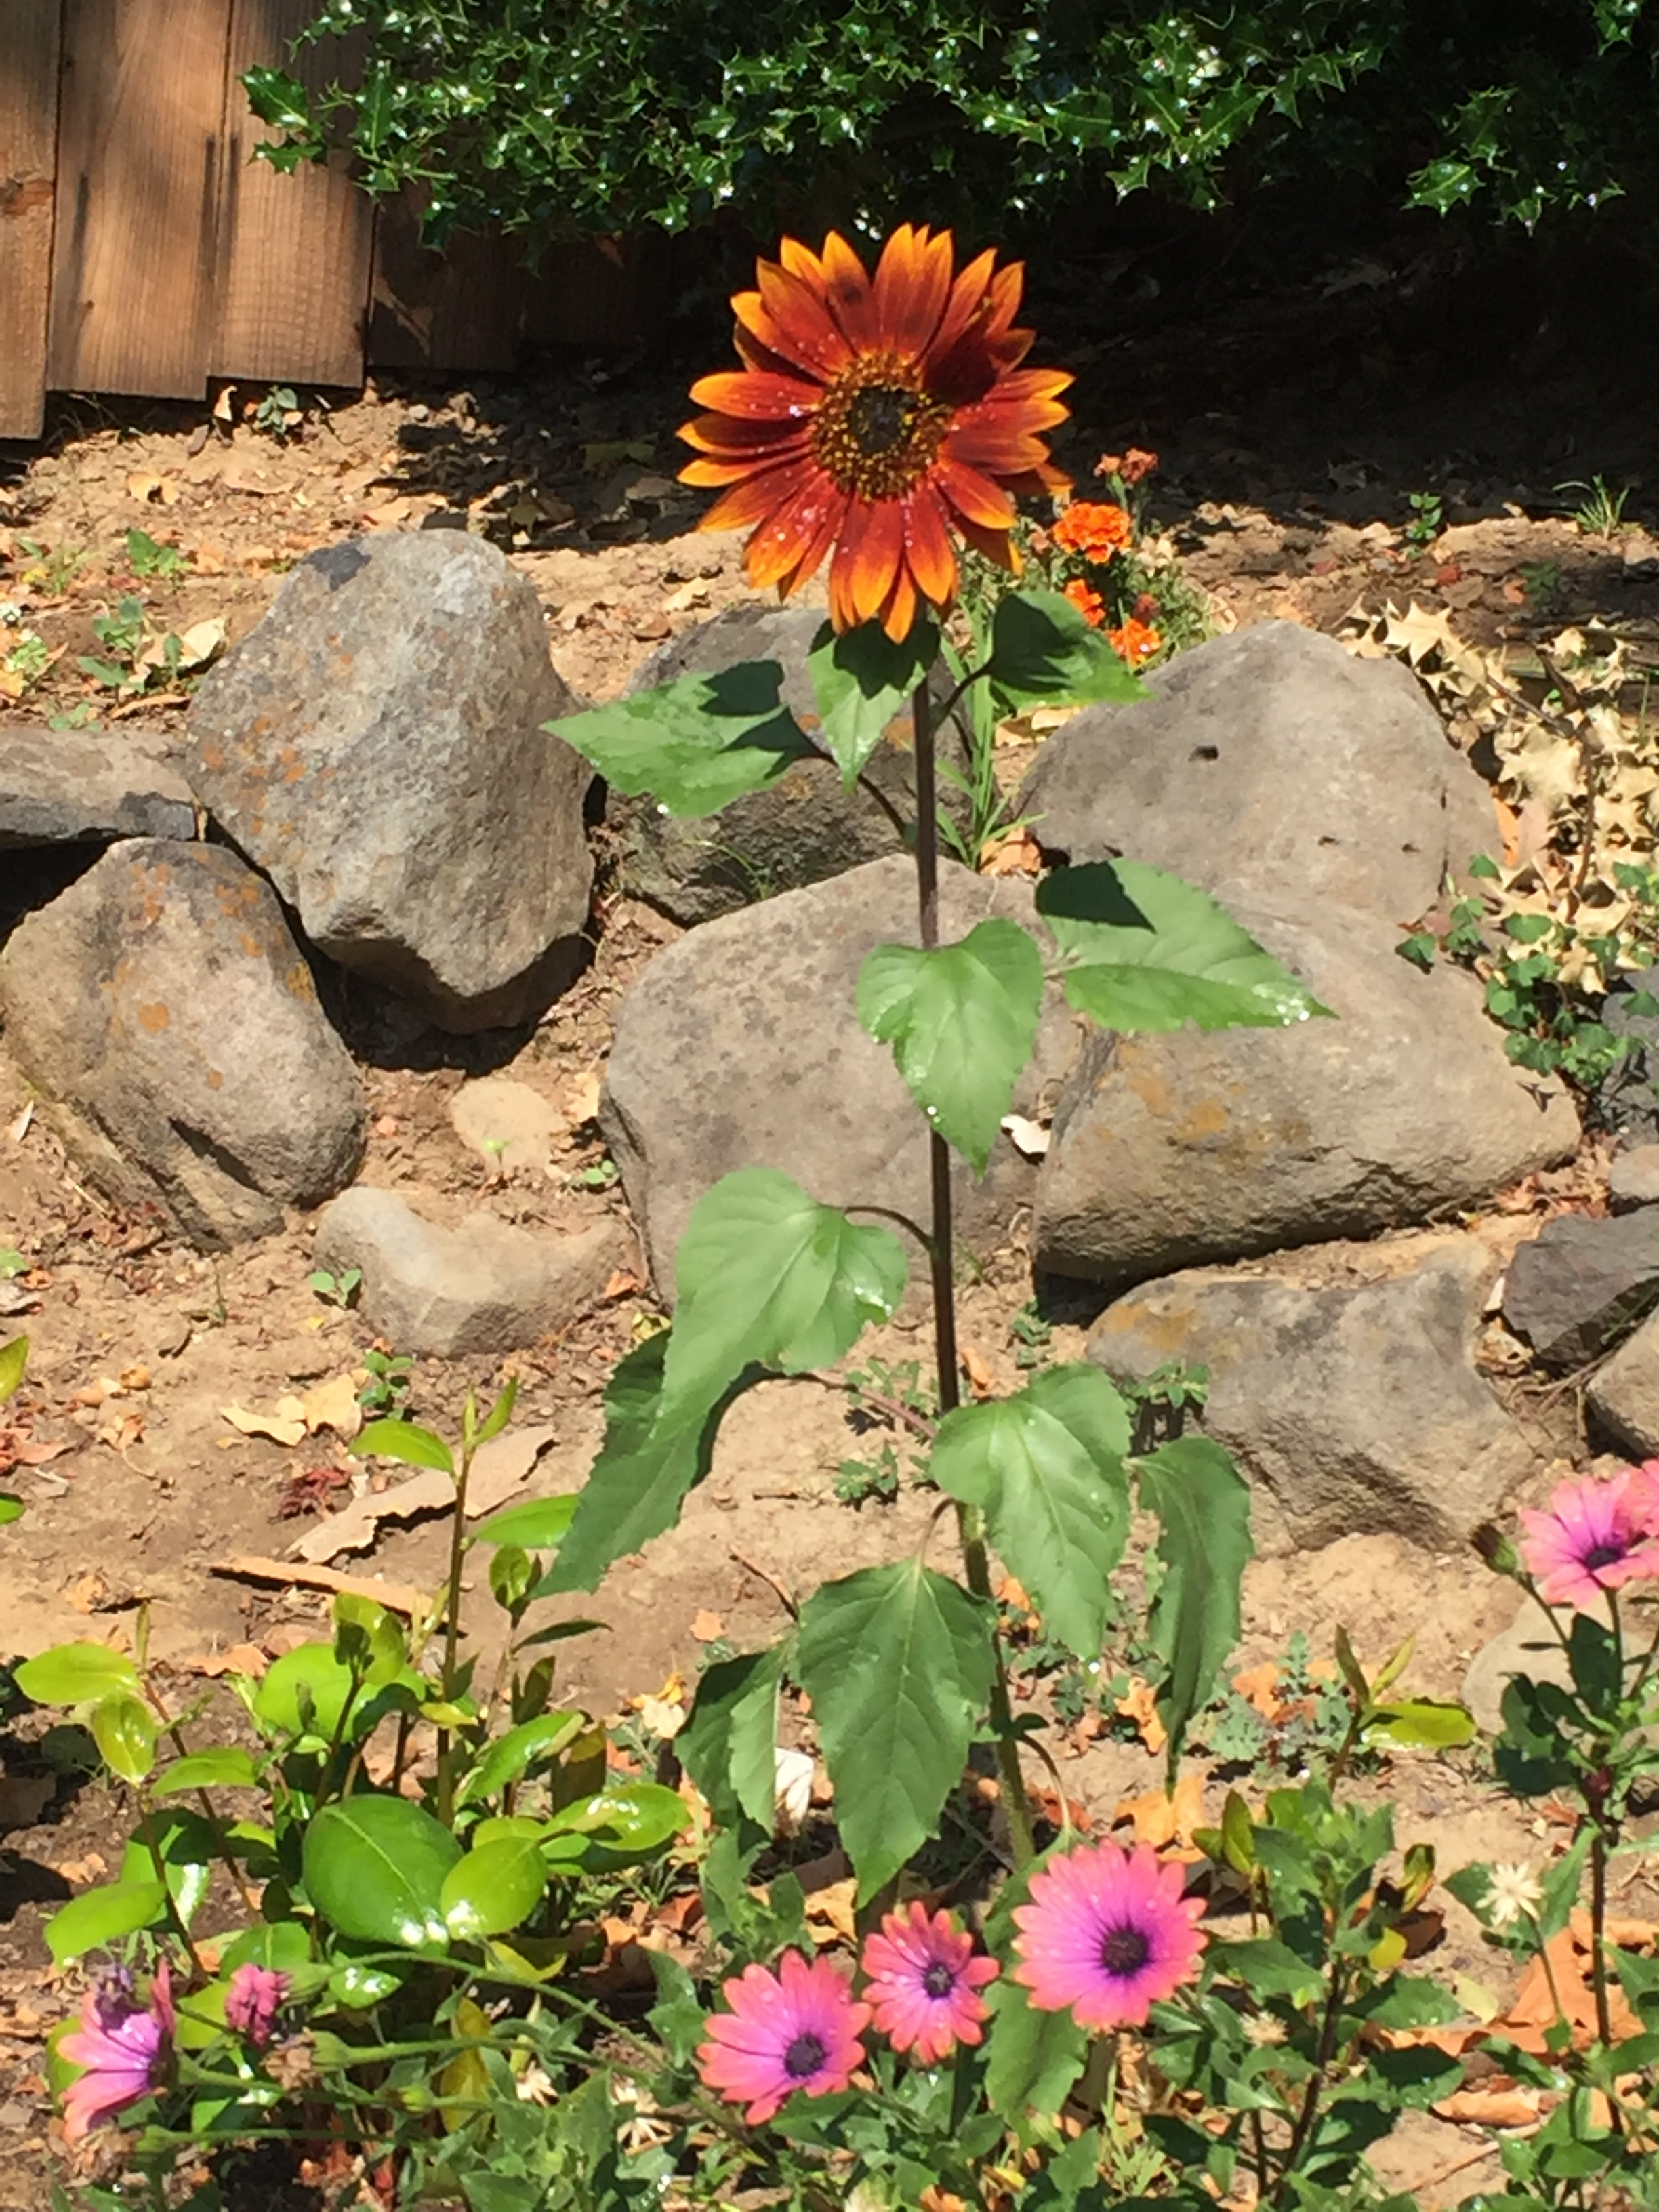 the fighter sunflower